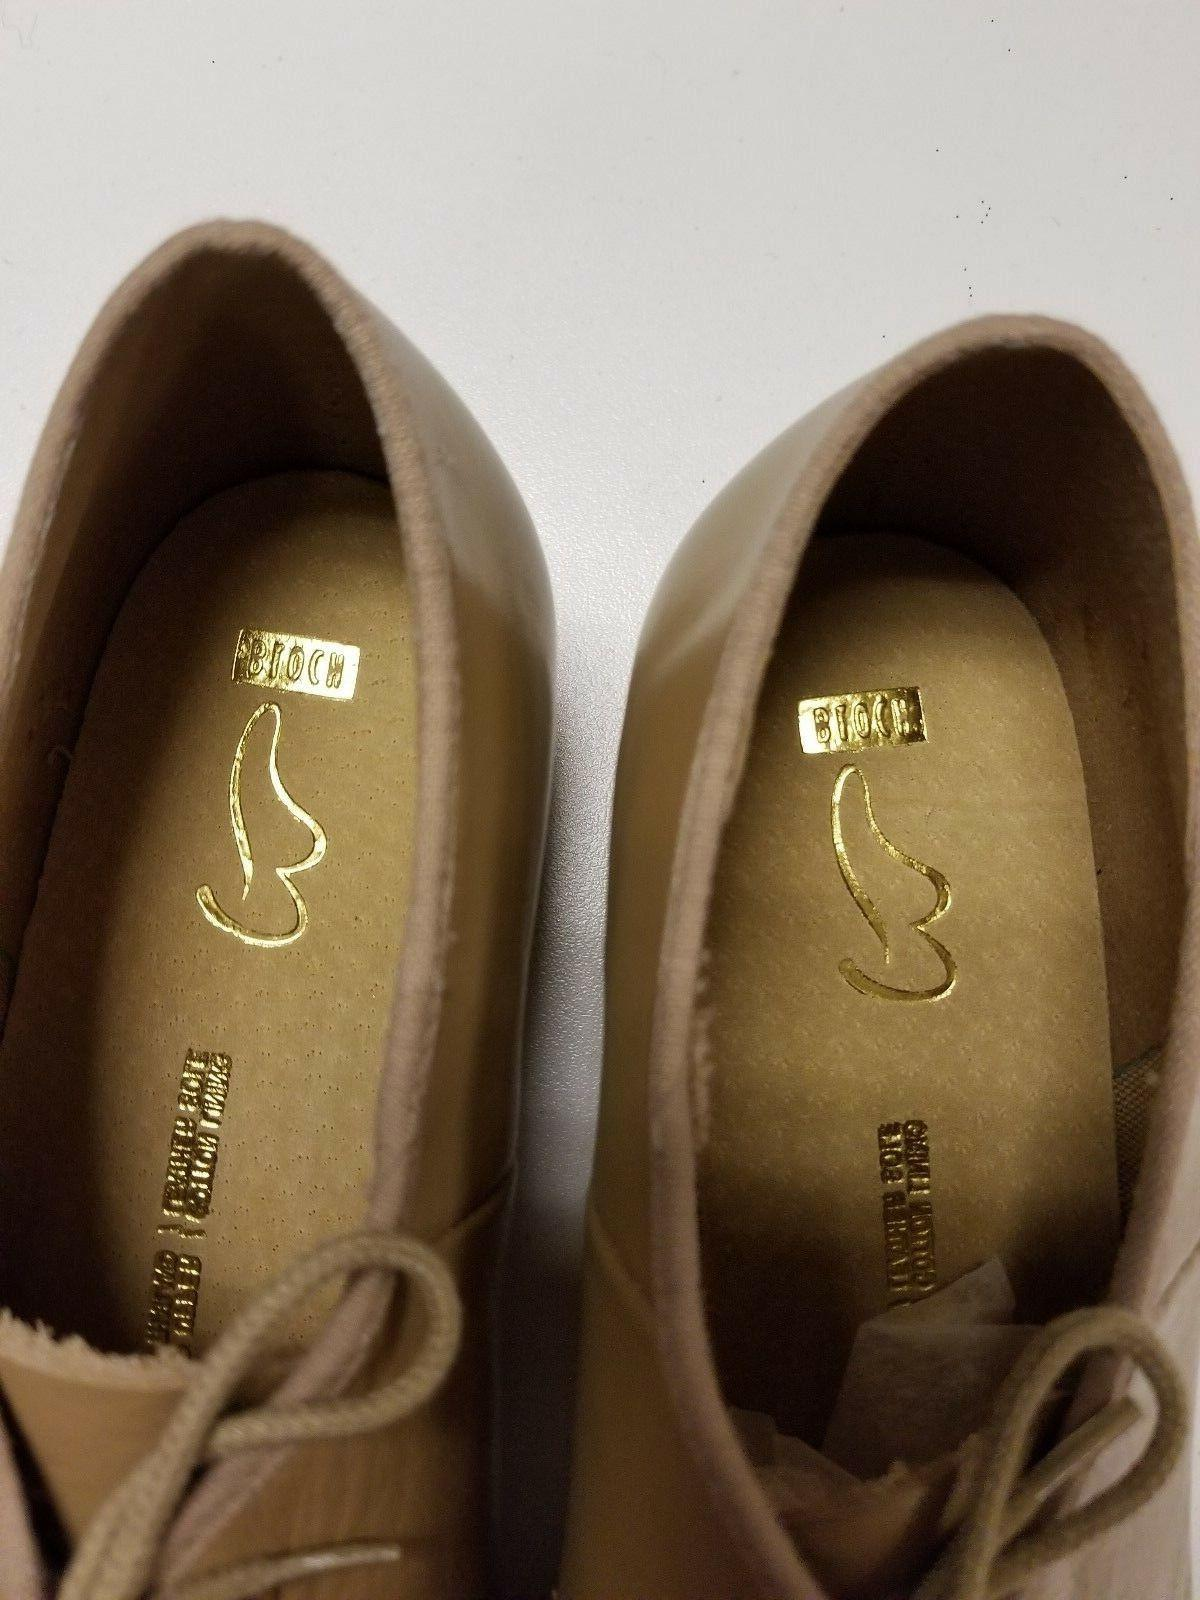 Bloch Oxford Shoes, Tan or 9.5, SO301 Taps, 091241